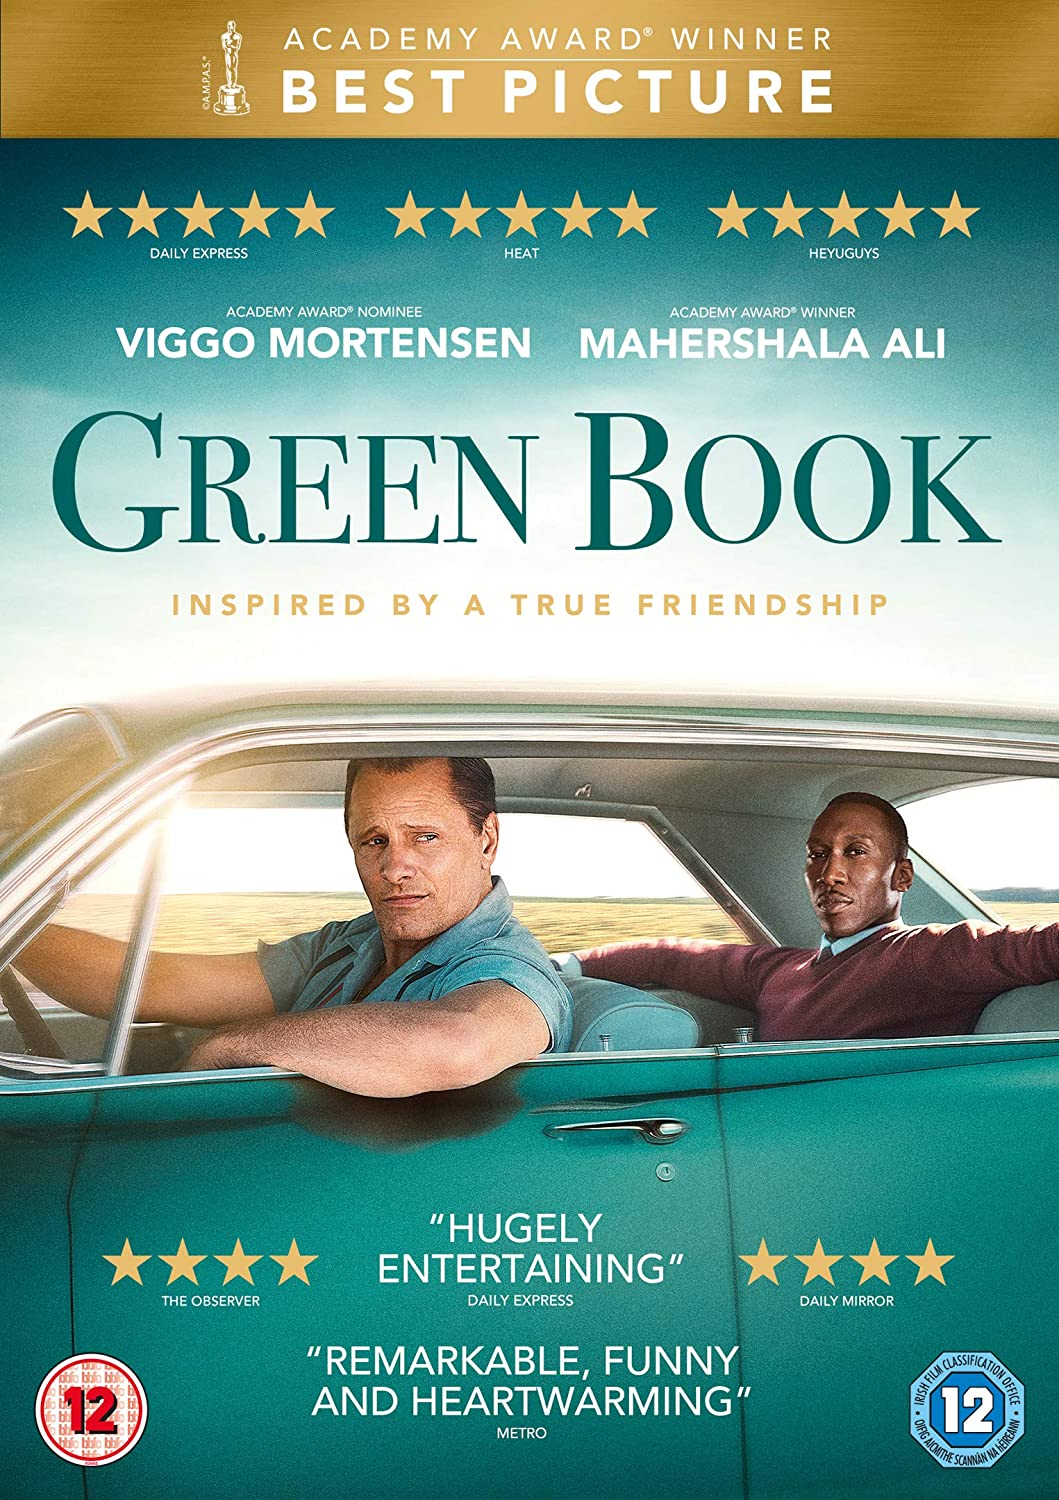 Ciné-club : Green book @ Les Pléiades